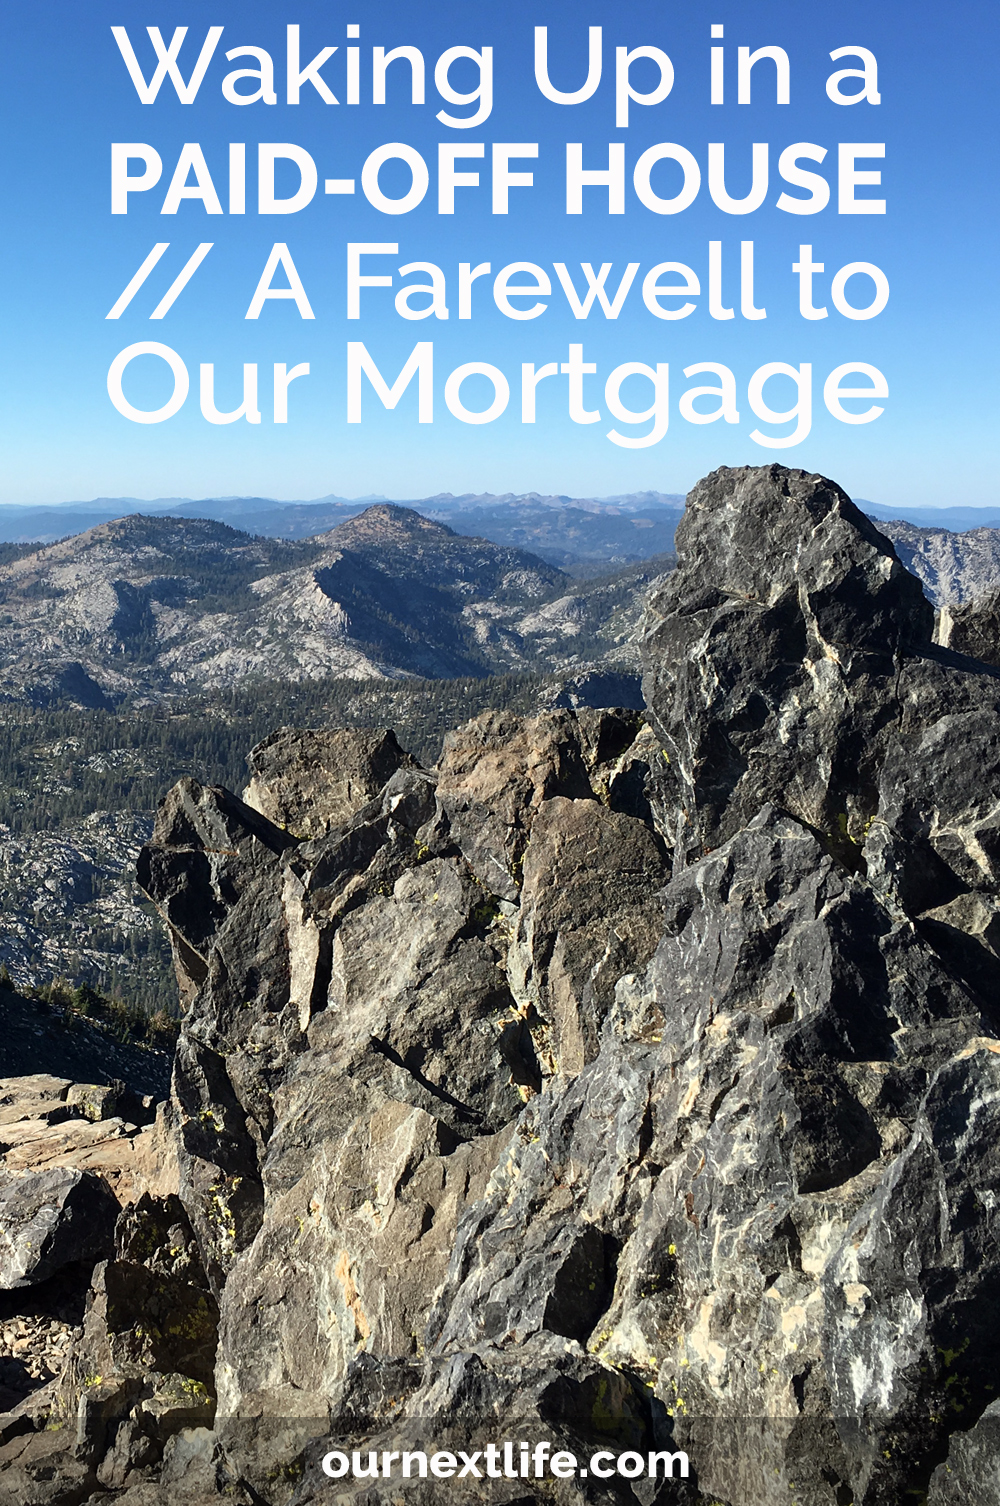 Waking Up in a Paid-Off House // A Farewell to Our Mortgage -- We just paid off our house! Here's why we did it and what it means for our early retirement plan moving forward!